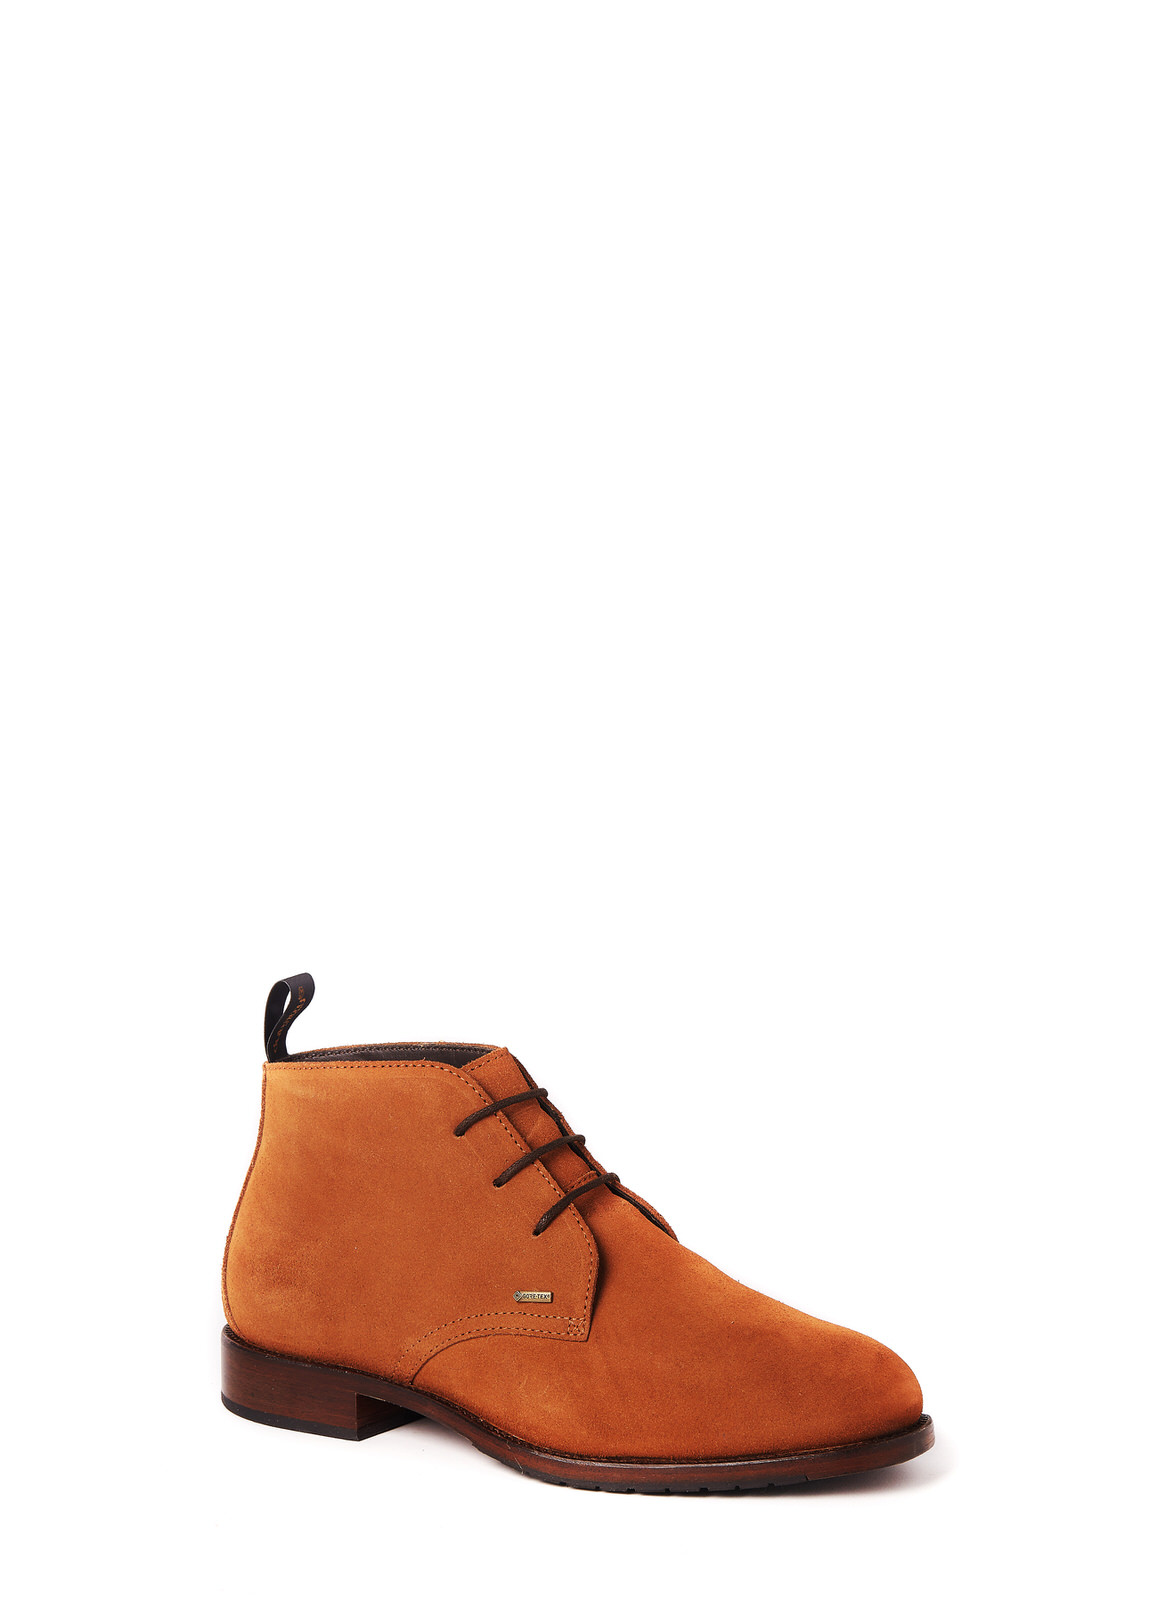 Dubarry_Waterville Mid Top Leather Boot - Camel_Image_1